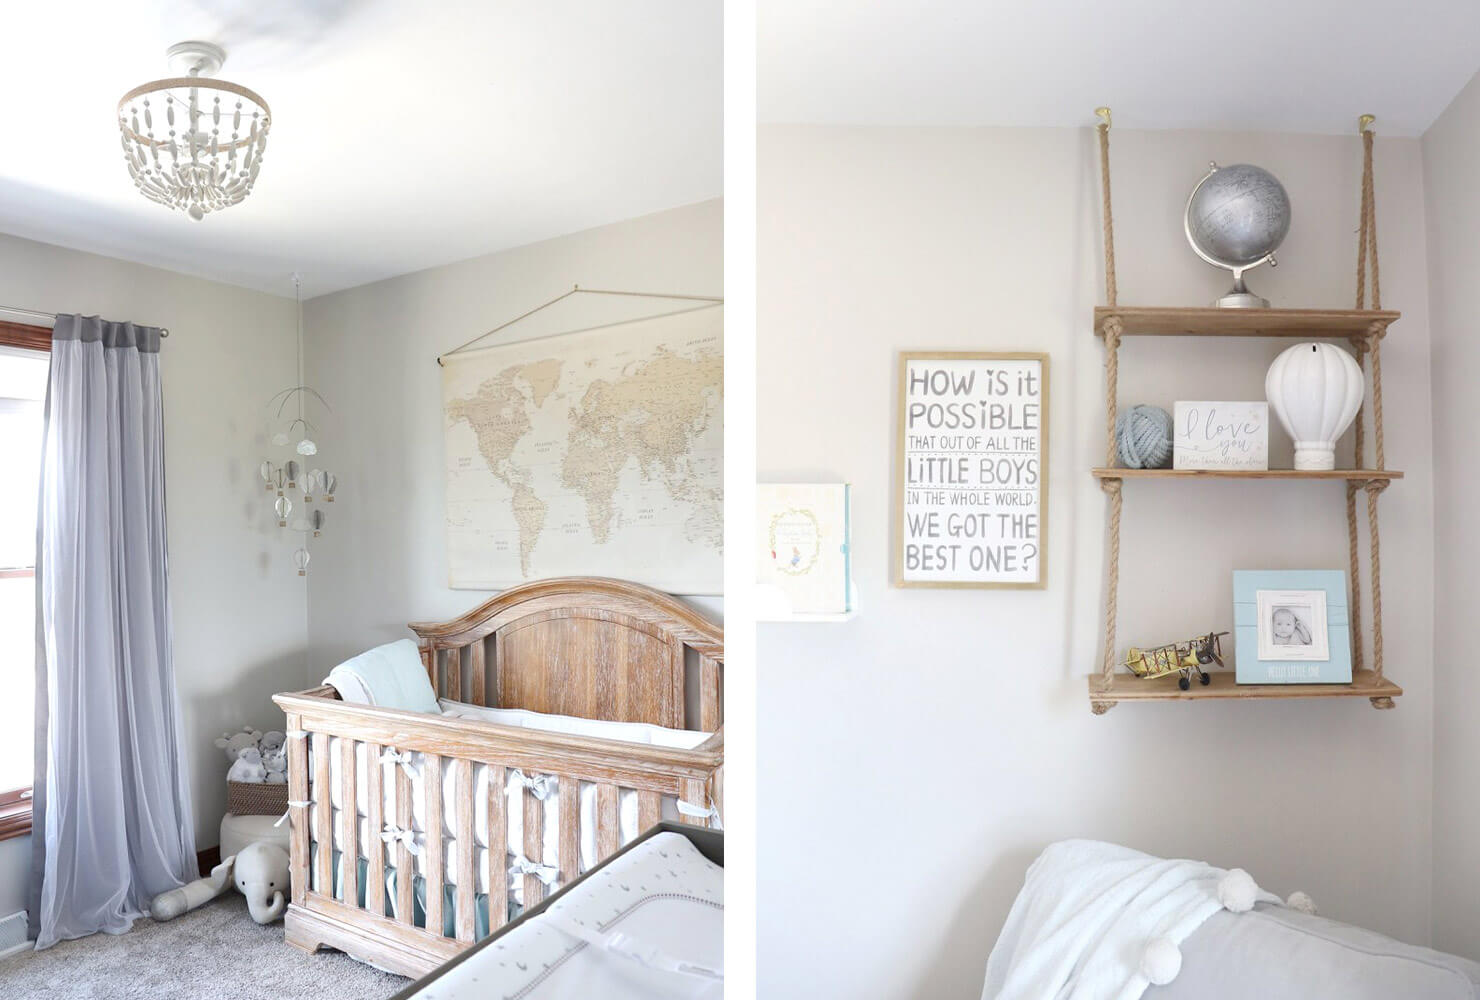 nursery room ideas hot air balloons.